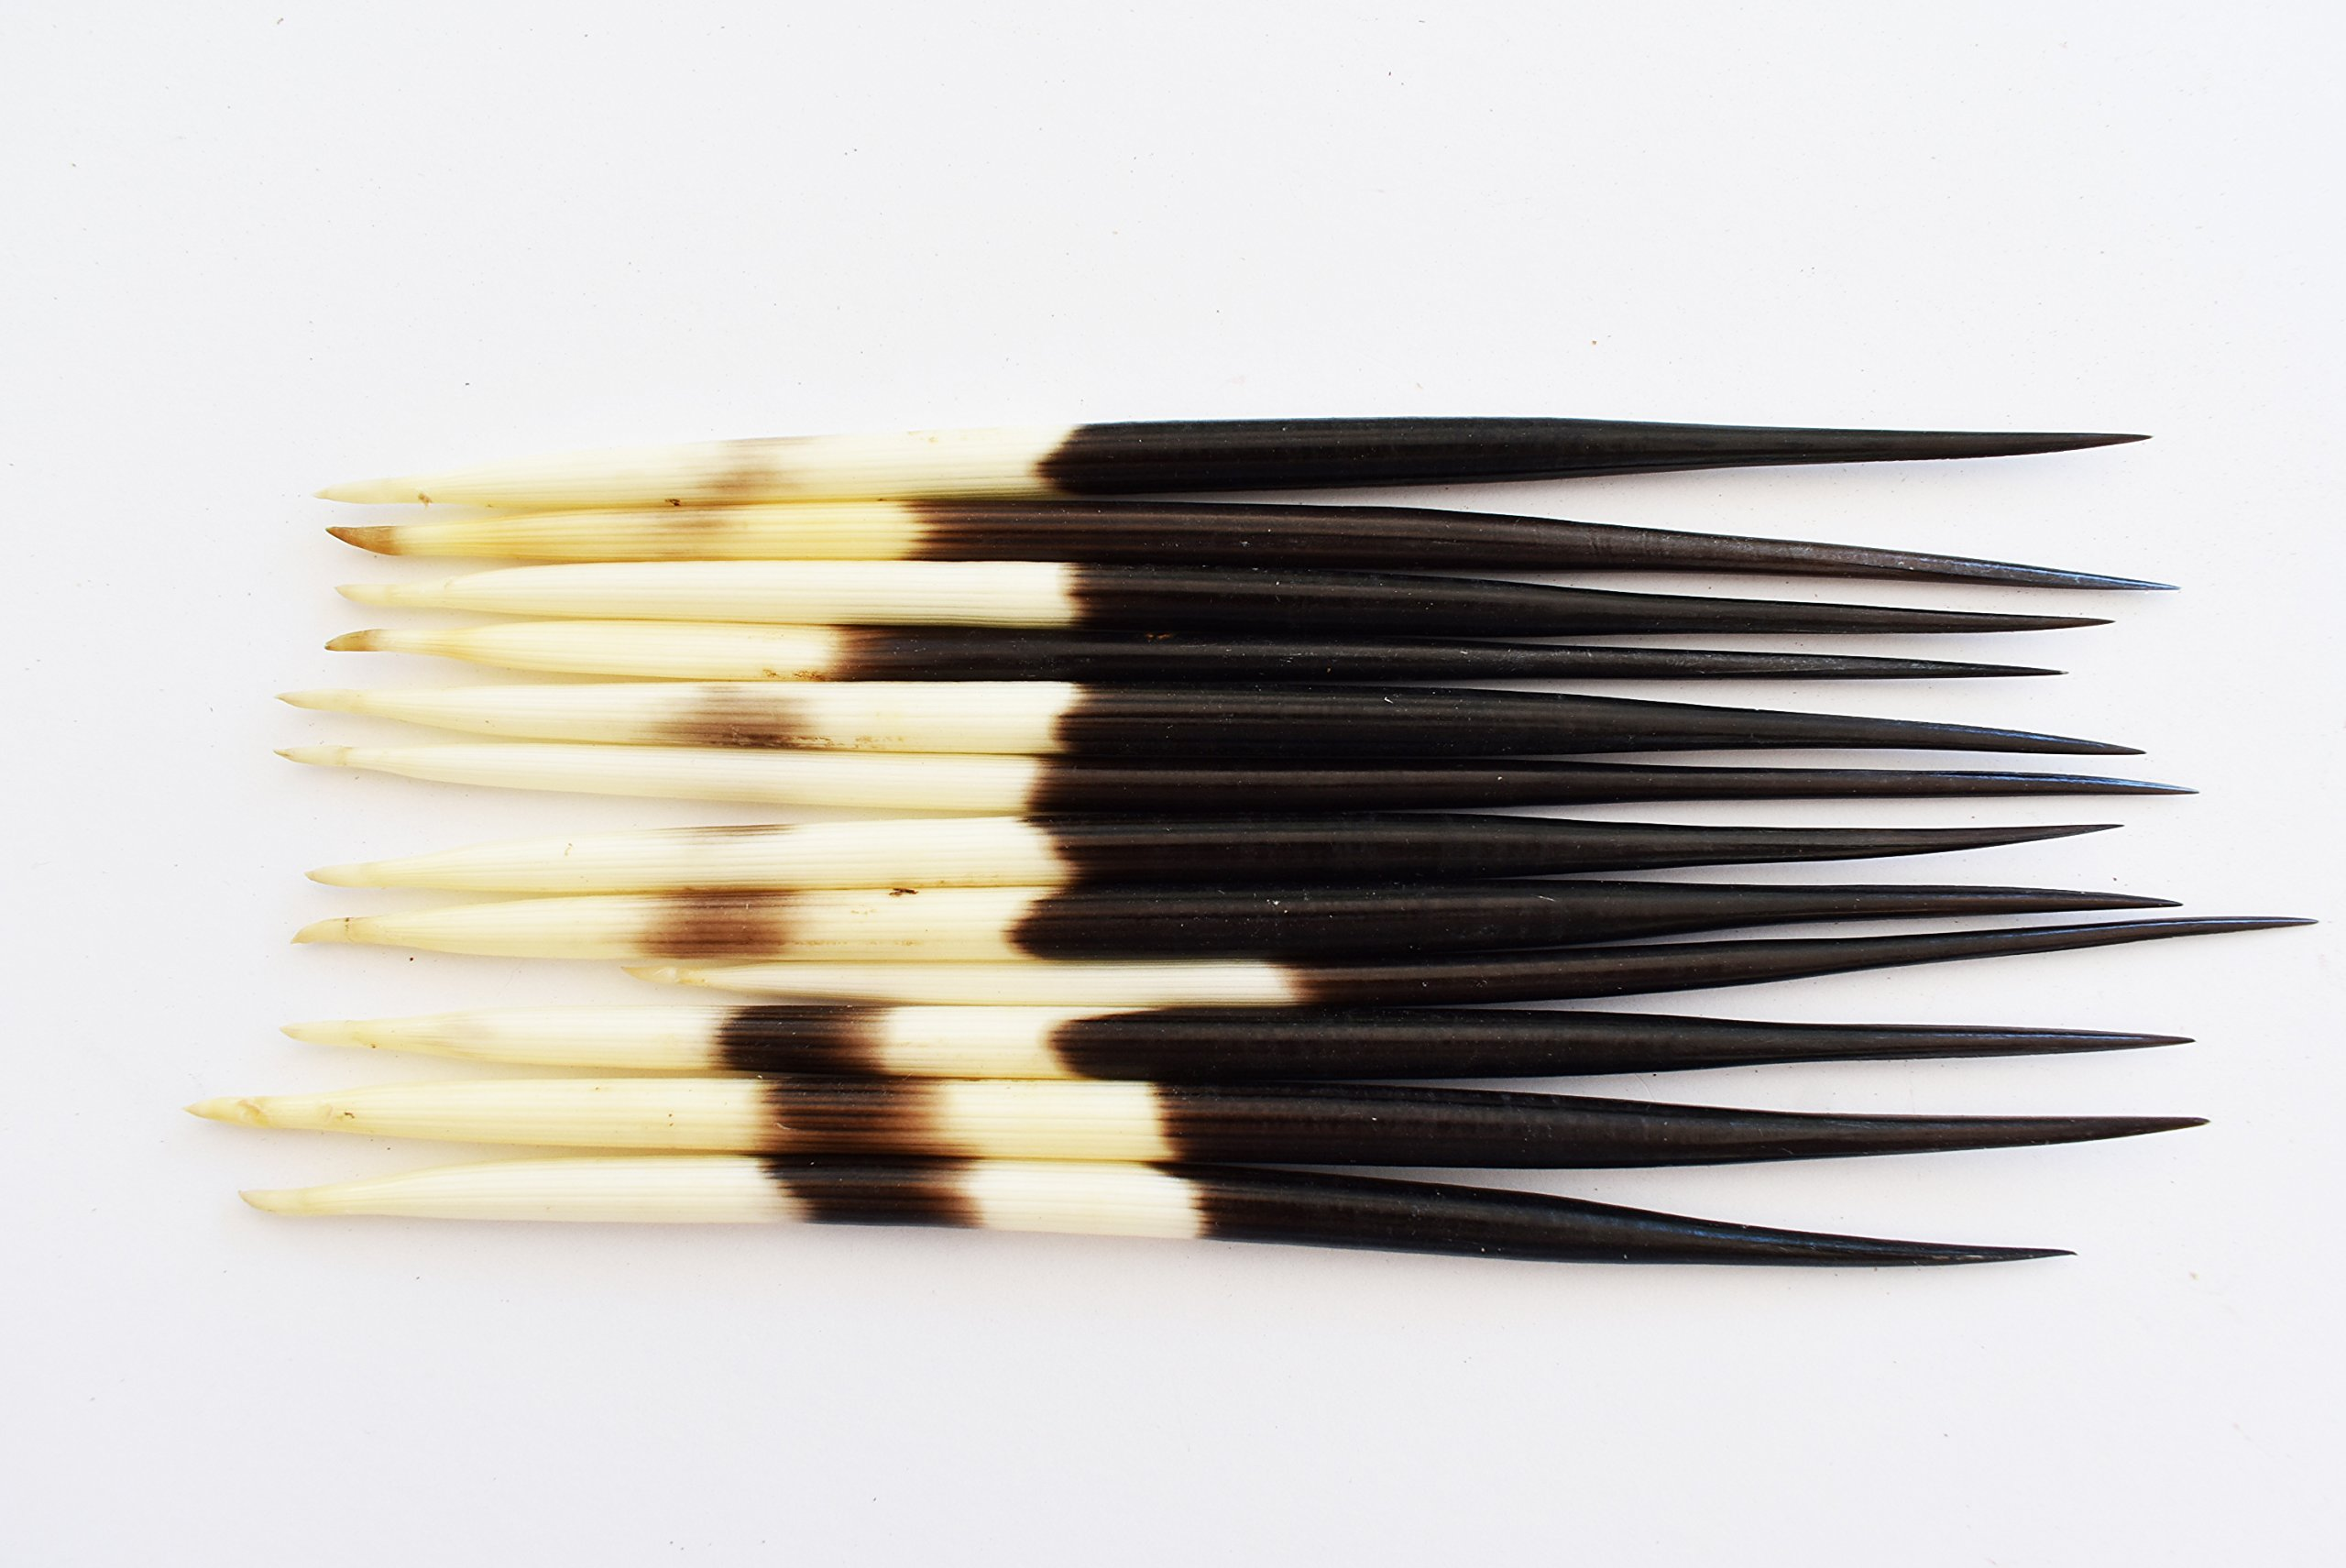 Florida Shells and Gifts Set of 24 African Porcupine Quills (5-7'') Handpicked Decor Hobby Indian Crafts Hair Sticks